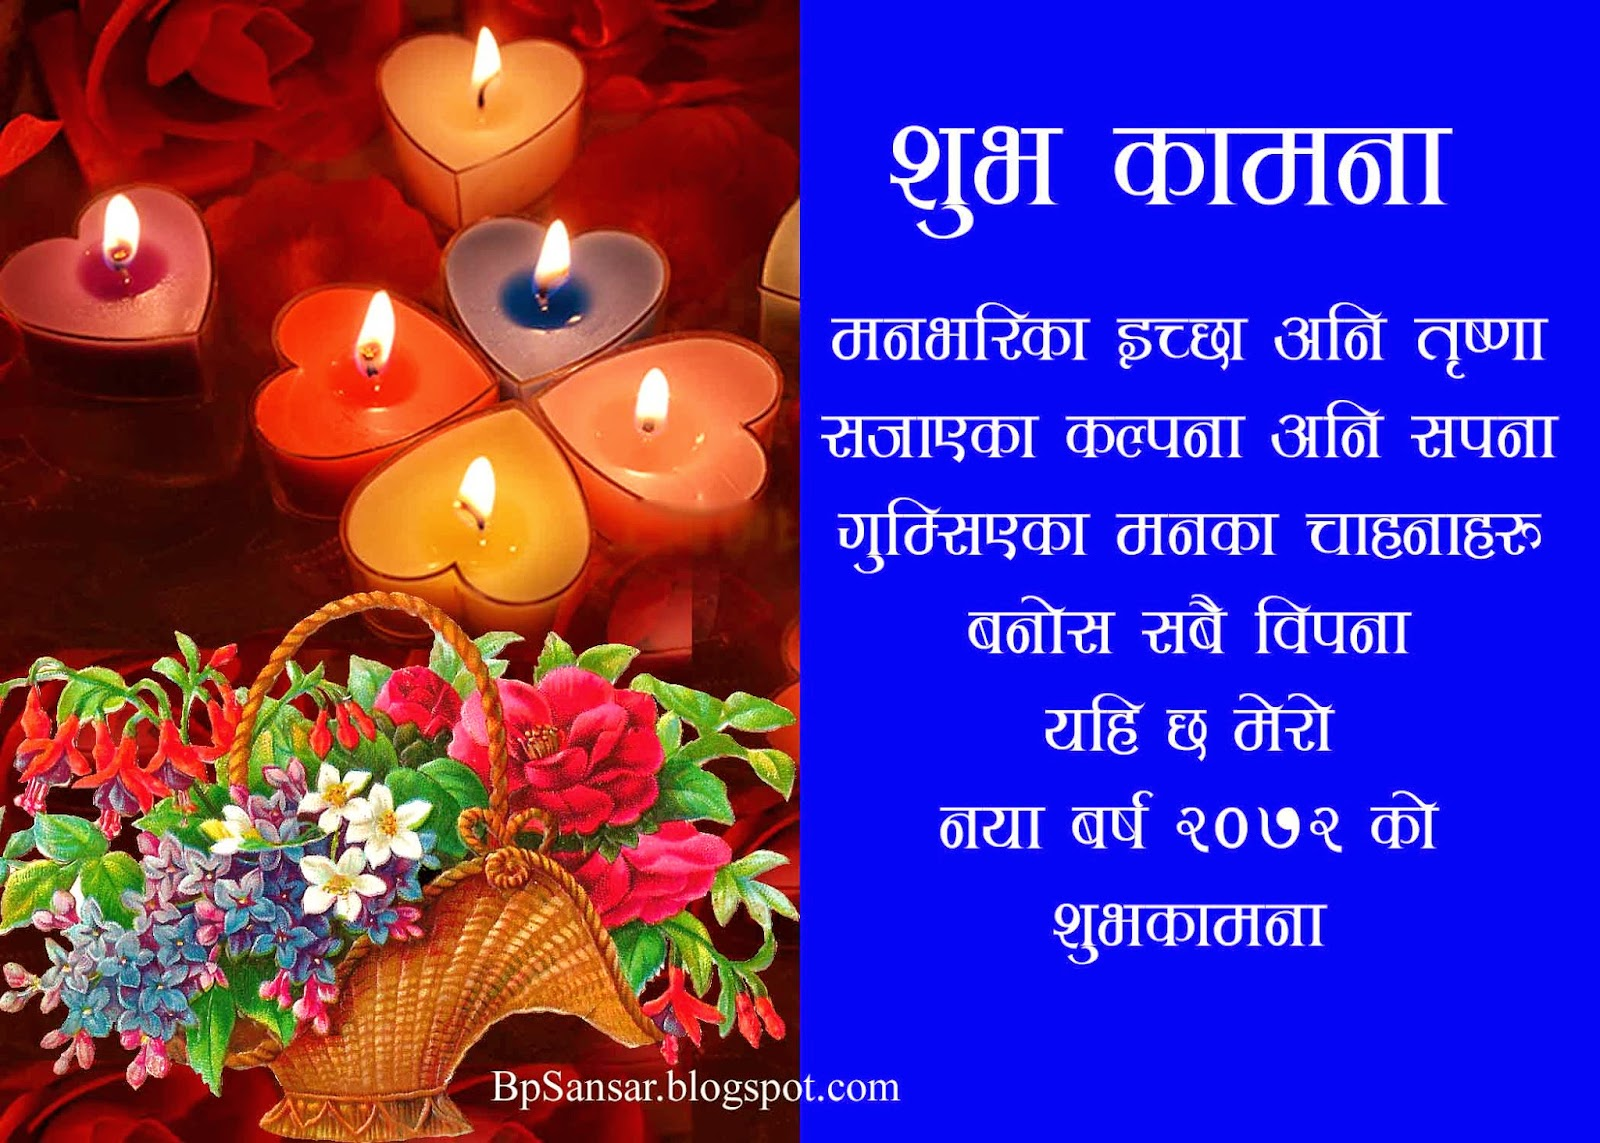 nepali new year greeting card for girl friend